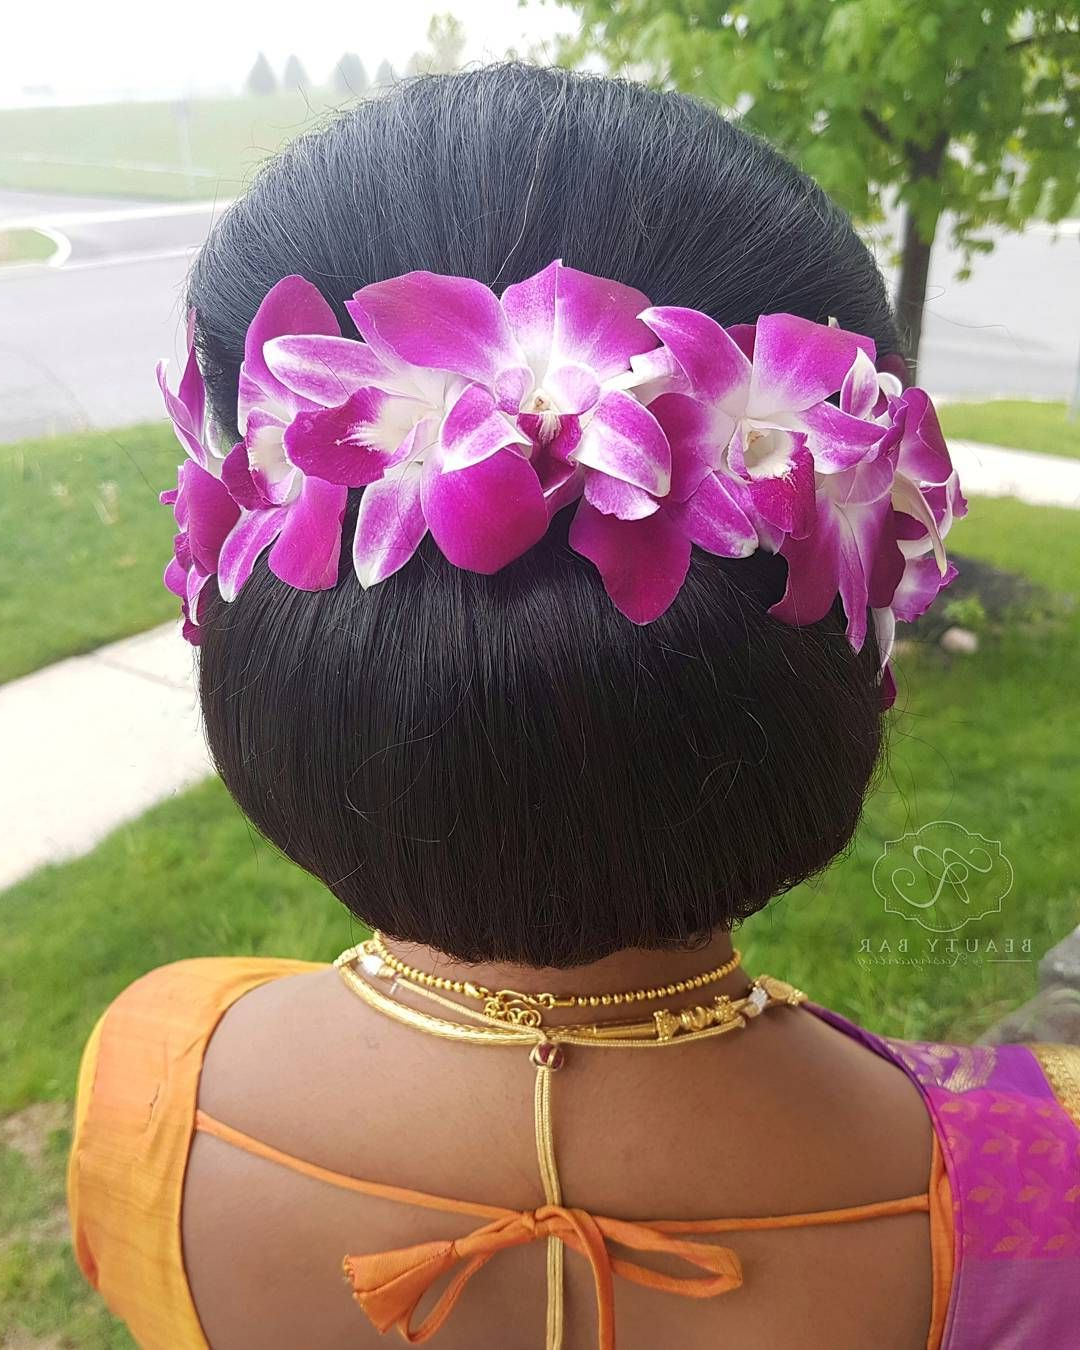 Popular Side Bun Prom Hairstyles With Orchids With Beautiful Fresh Orchid Flowers On A Classic Low Bun Updo With (View 14 of 20)